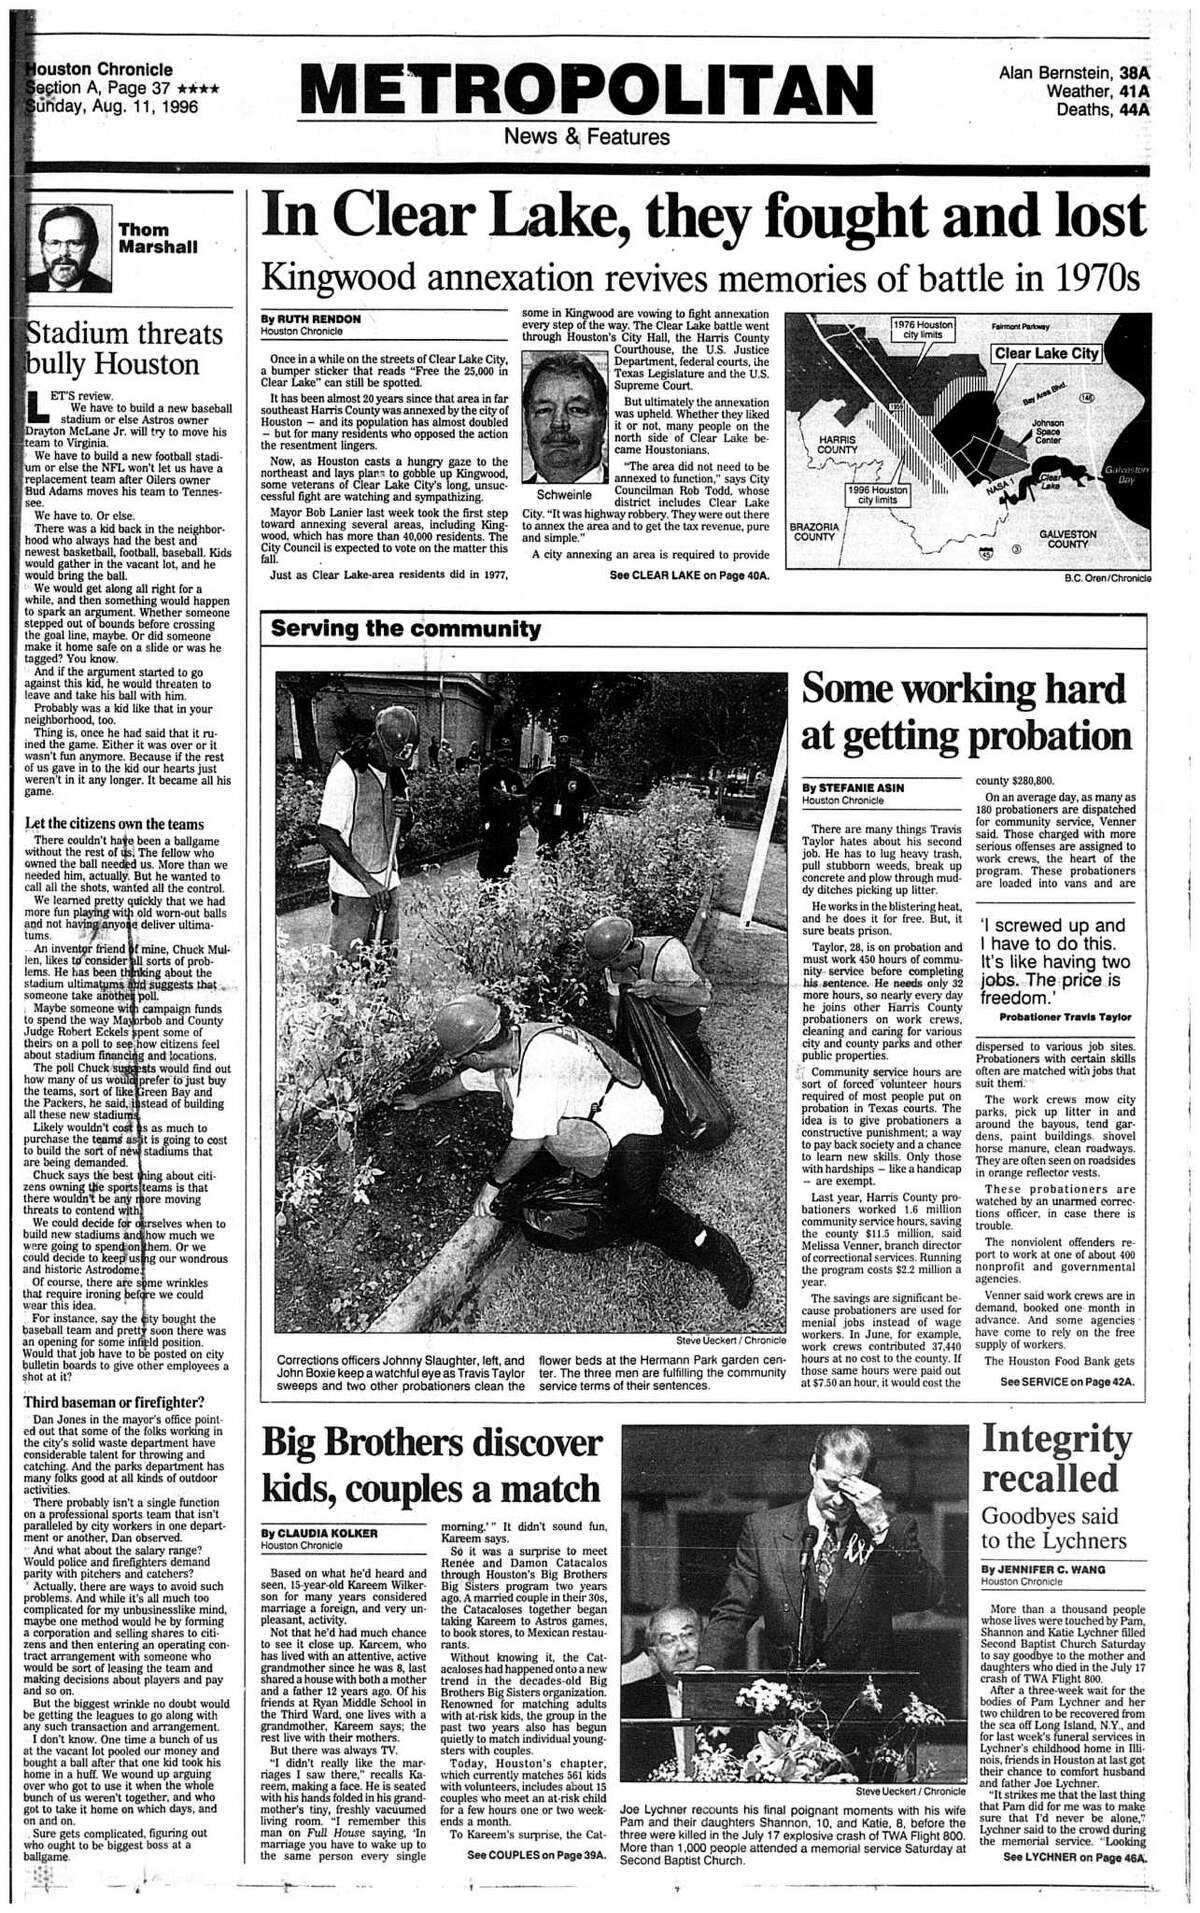 August 11, 1996 - section A, page 37. In Clear Lake, they fought and lost. Kingwood annexation revives memories of battles in the 1970s